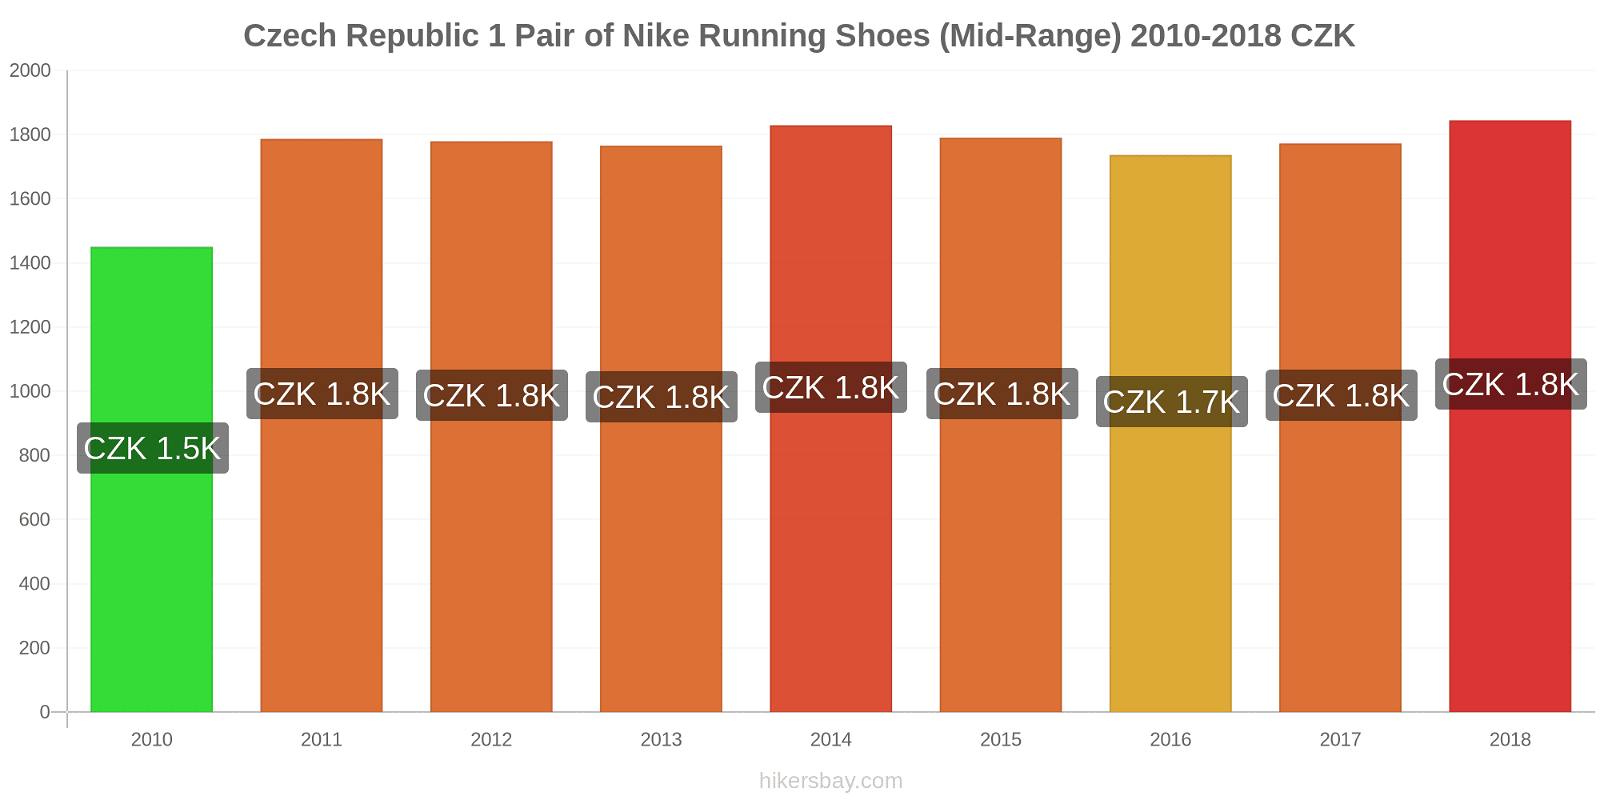 Czech Republic price changes 1 Pair of Nike Running Shoes (Mid-Range) hikersbay.com